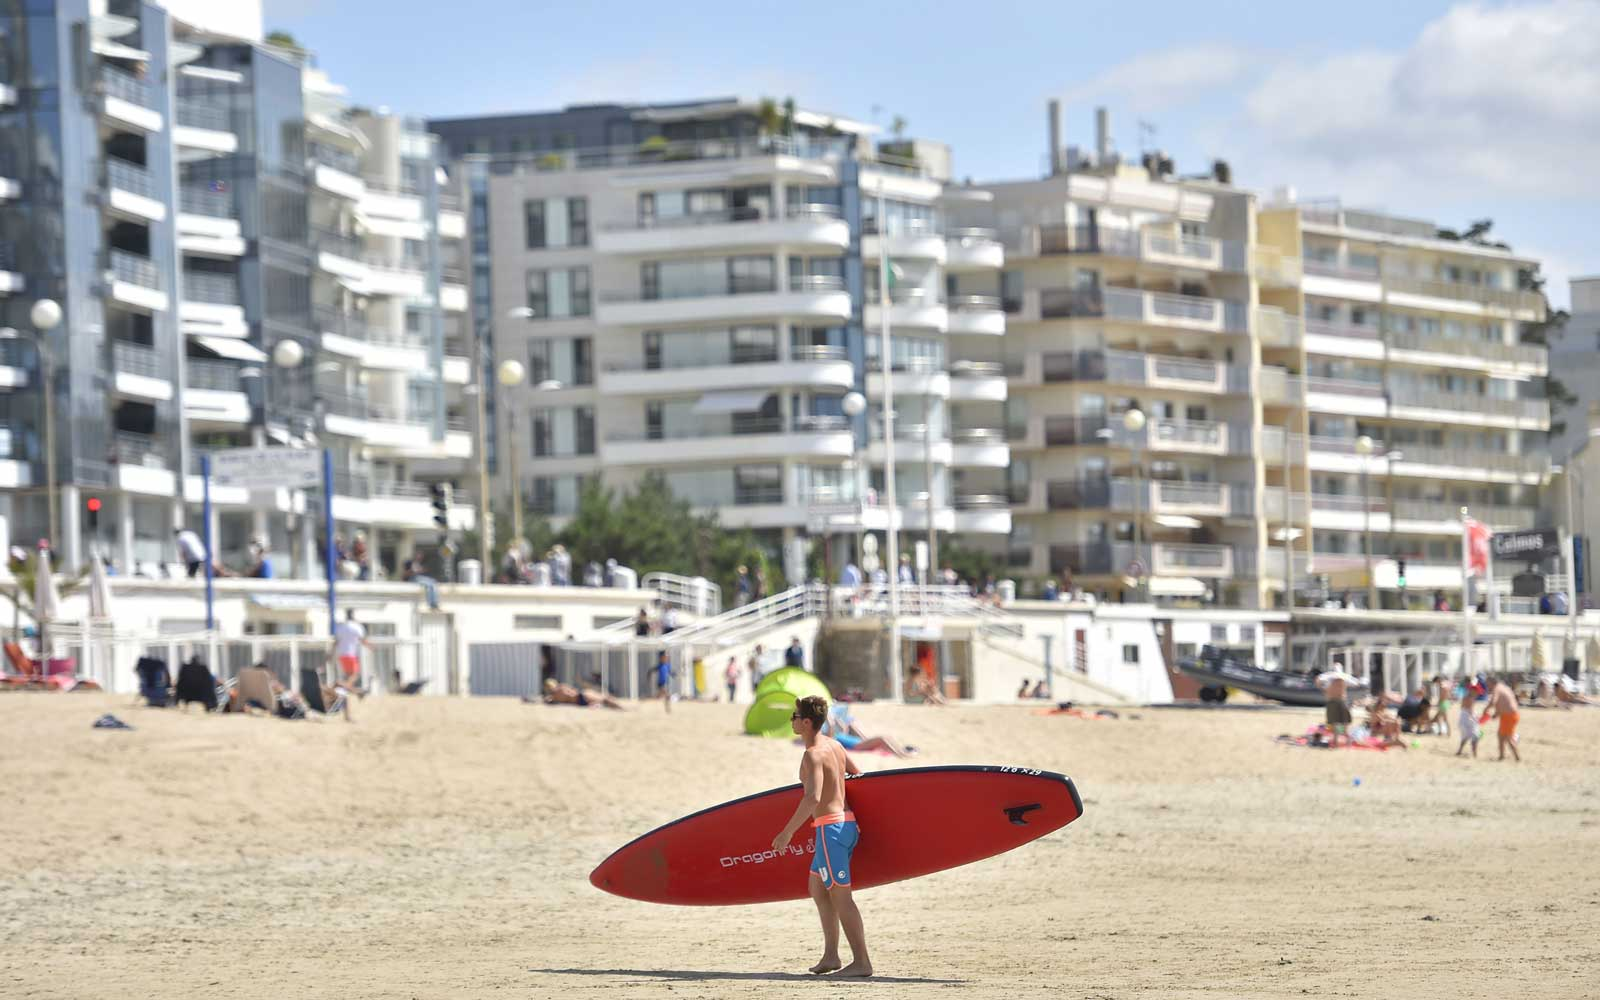 People enjoy time at the beach in La Baule,